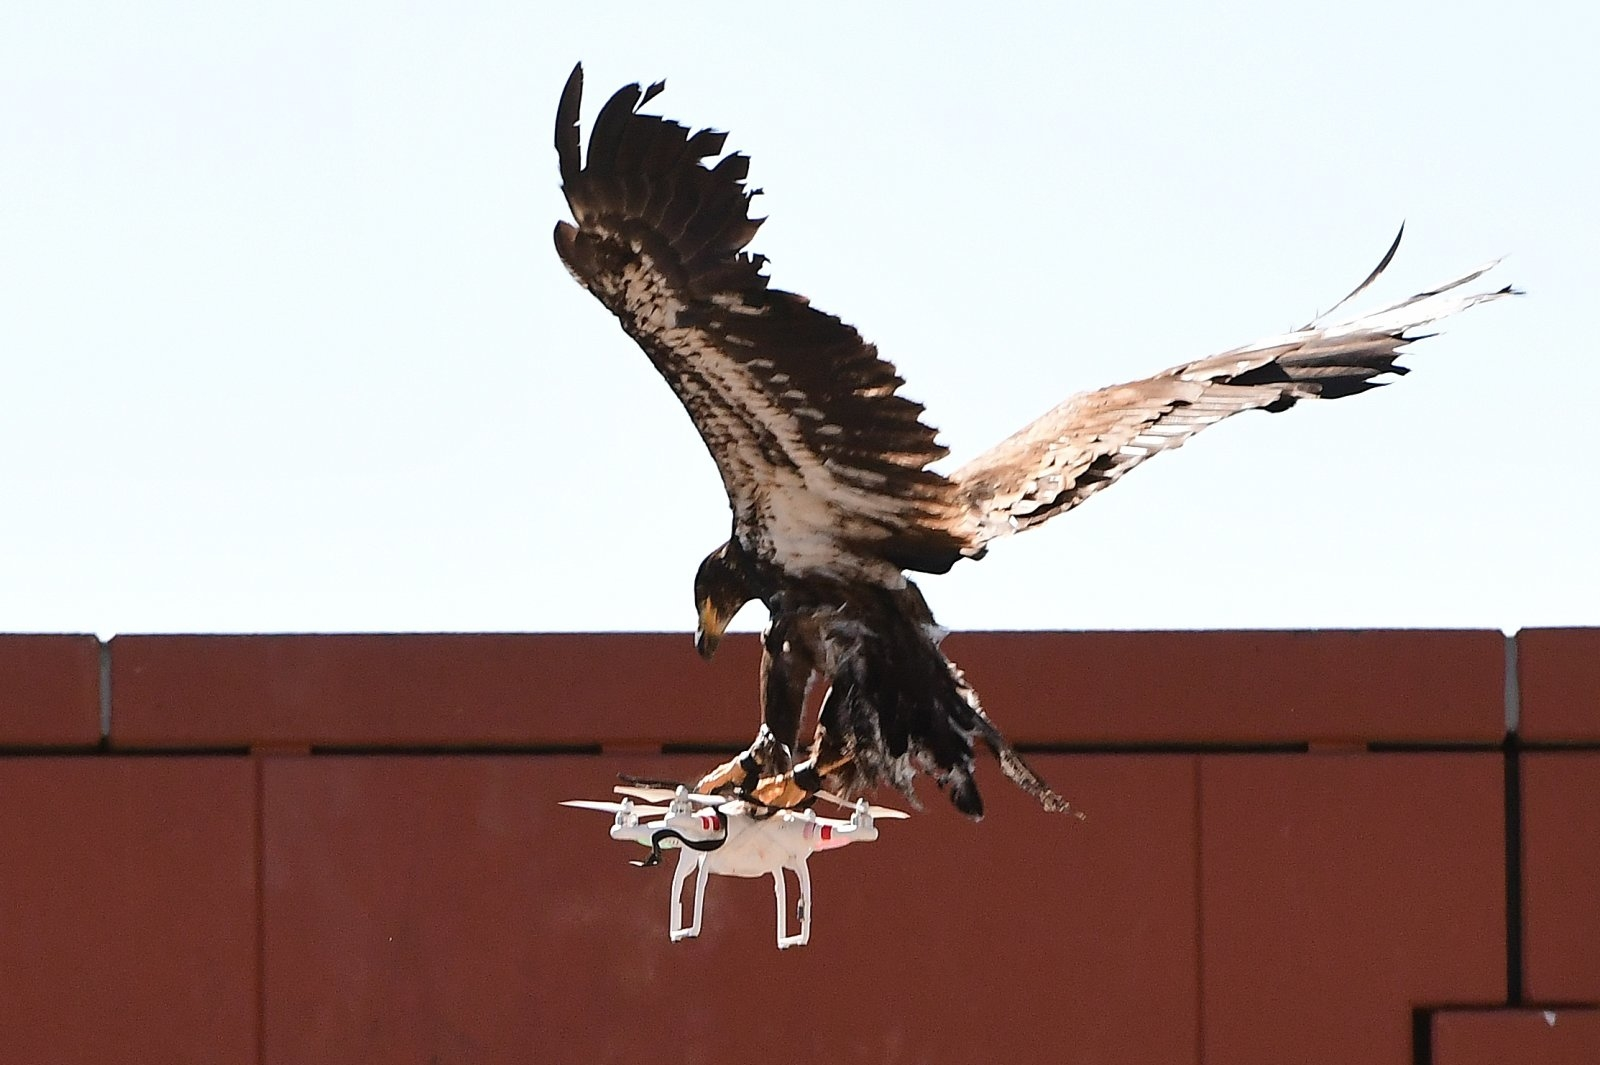 A young eagle trained to catch drones displays its skills during a demonstration organized by the Dutch police as part of a program to train birds of prey to catch drones flying over sensitive or restricted areas, at the Dutch Police Academy in Ossendrecht, The Netherlands, on September 12, 2016.   Dutch police are adopting a centuries-old pursuit to resolve the modern-day problem of increasing numbers of drones in the skies, becoming the world's first force to employ eagles as winged warriors. / AFP / EMMANUEL DUNAND        (Photo credit should read EMMANUEL DUNAND/AFP/Getty Images)